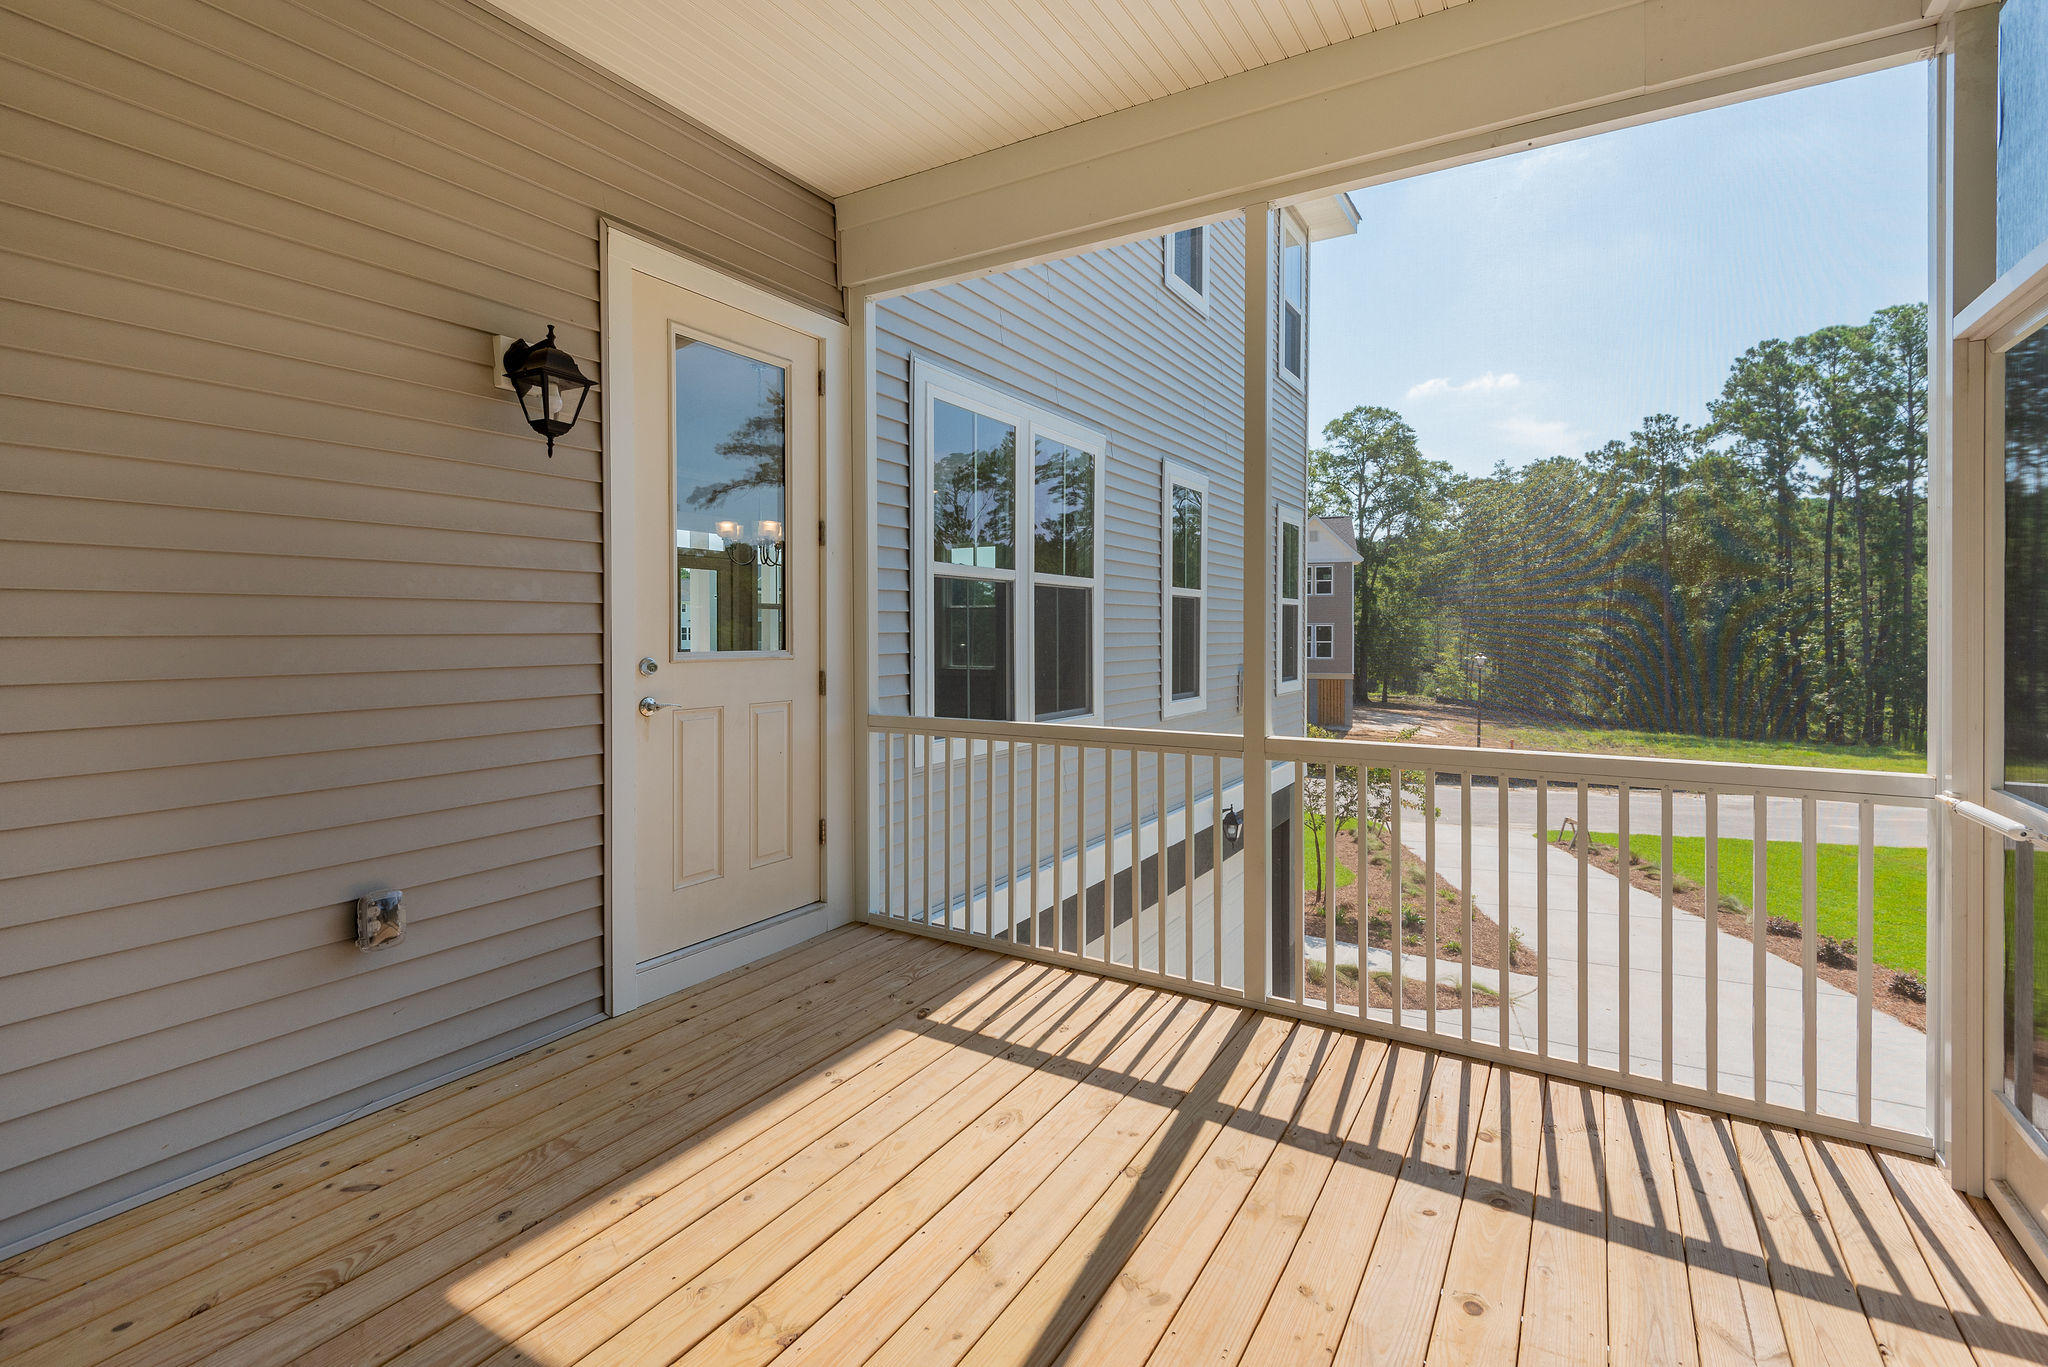 The Cove at Martins Creek Homes For Sale - 117 Martins Point, Wando, SC - 2